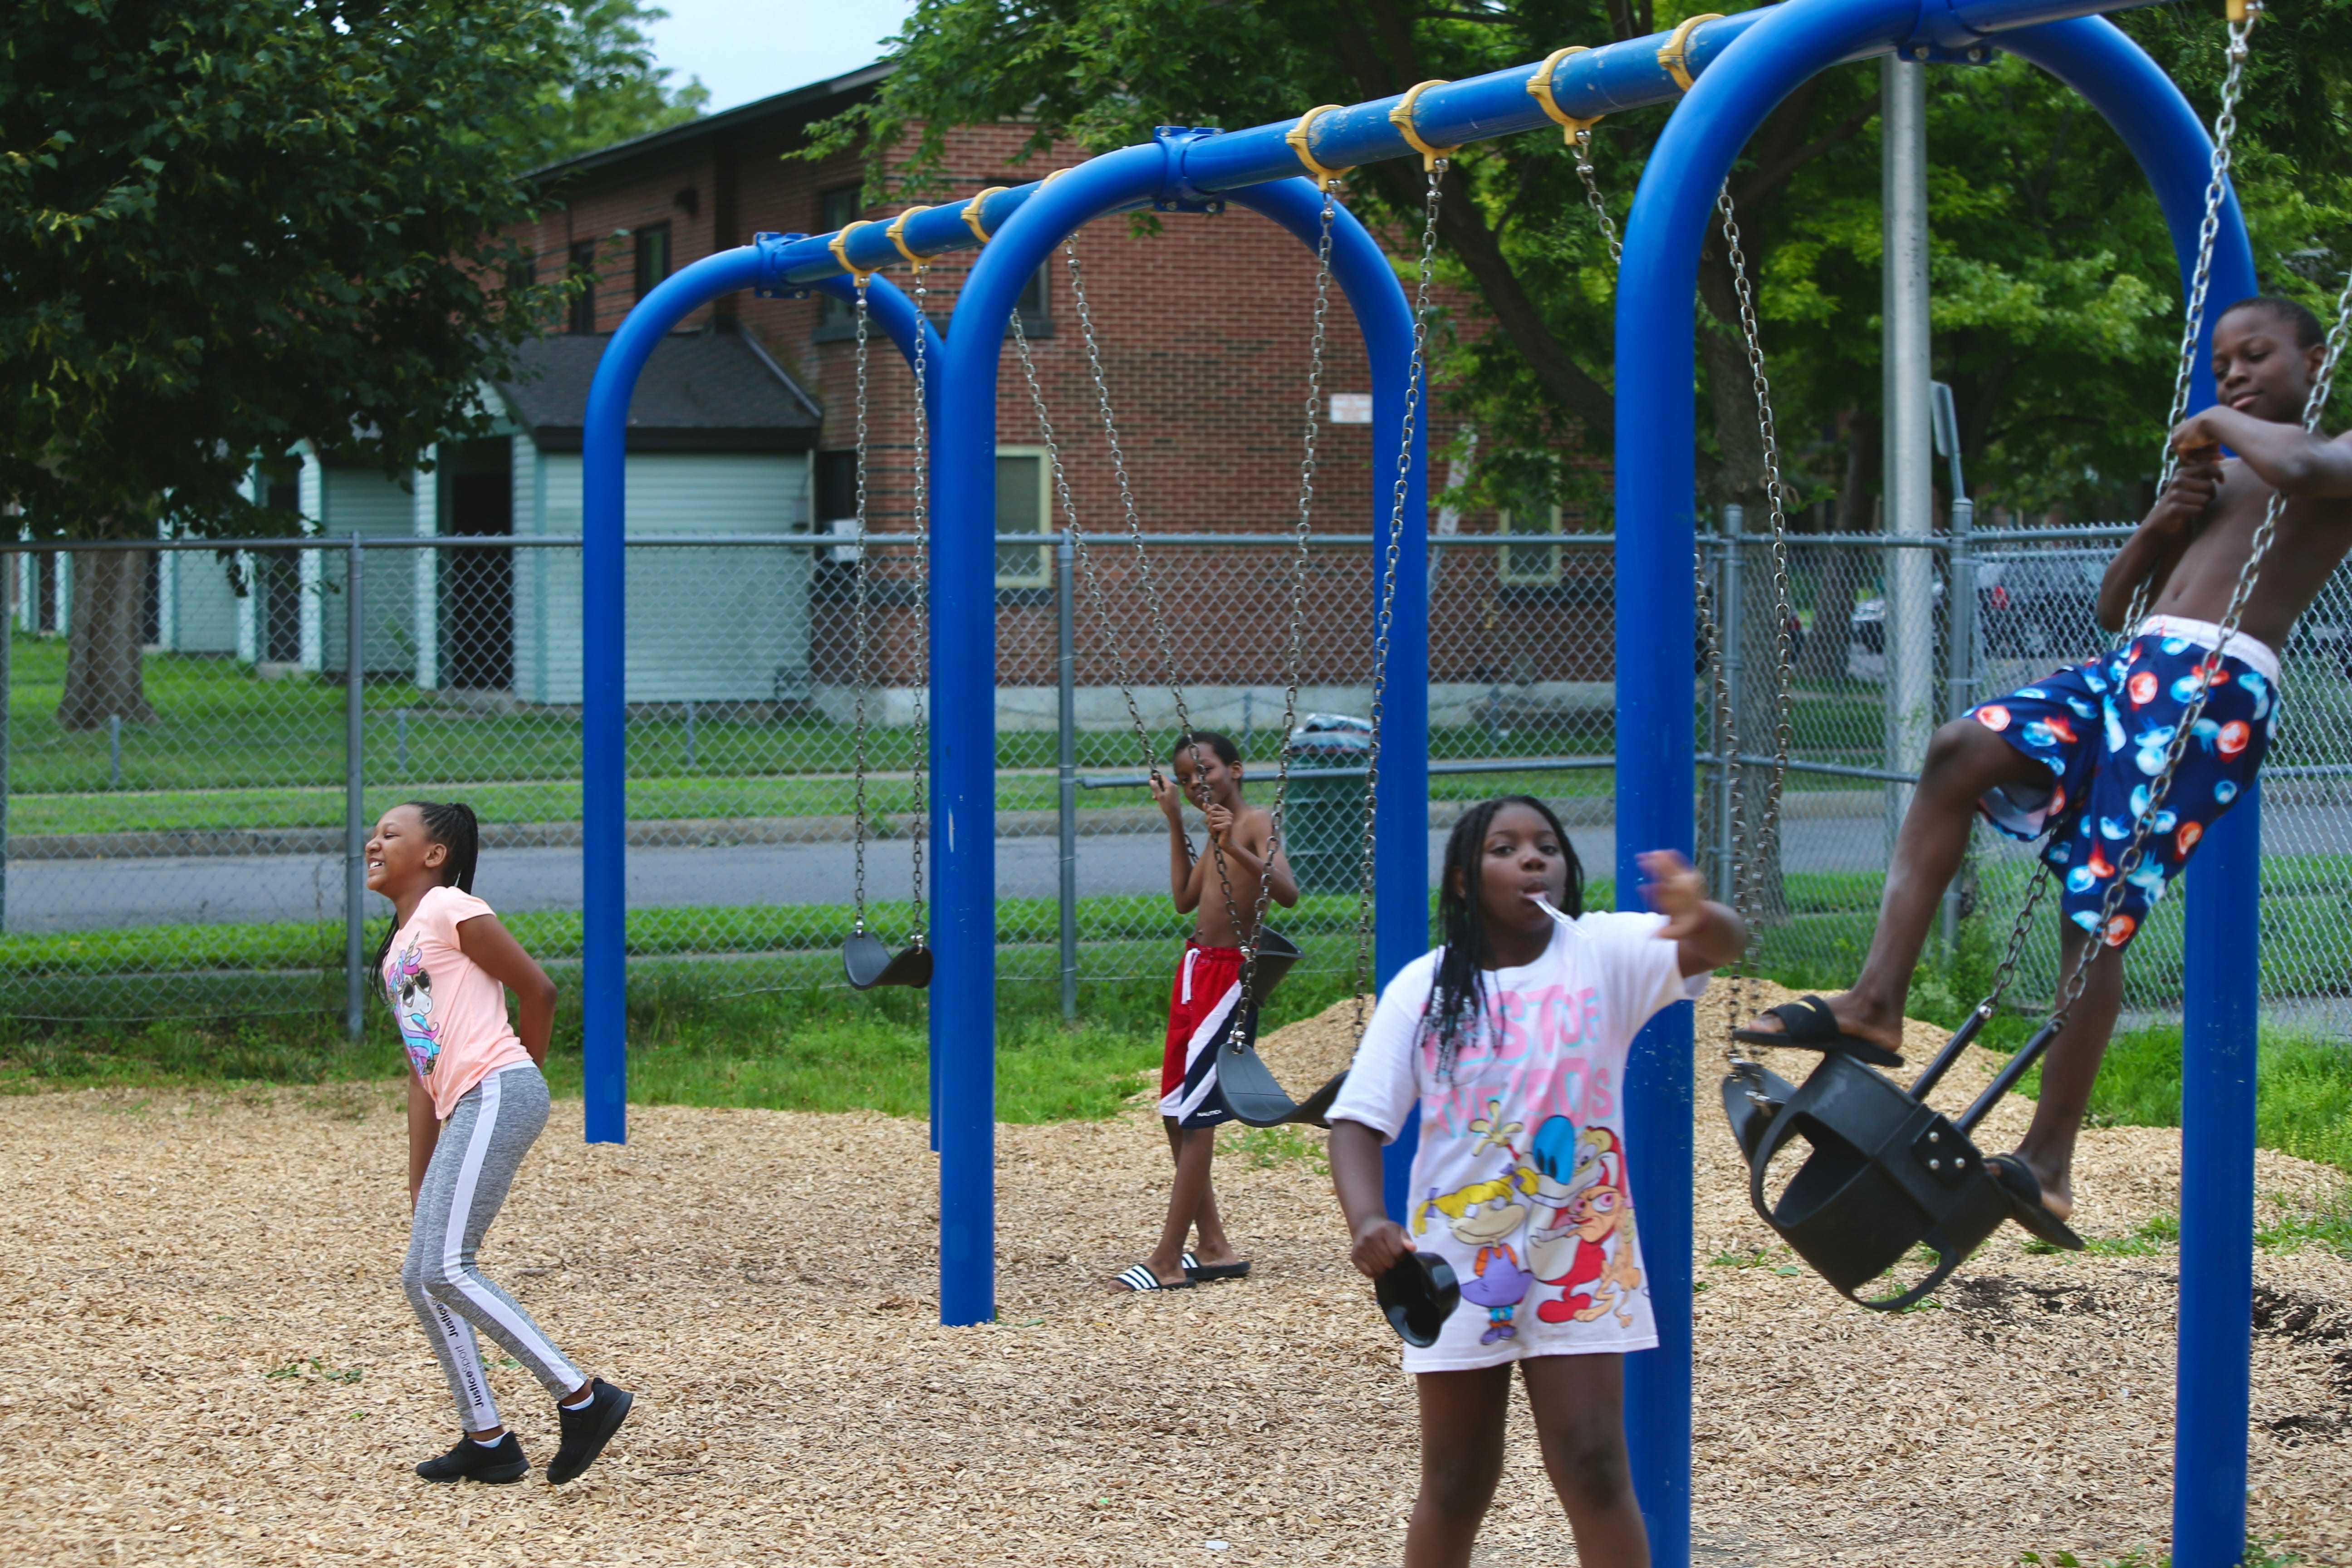 Children play and pose for the camera at playground close to I-81 in Pioneer Homes on July 16.